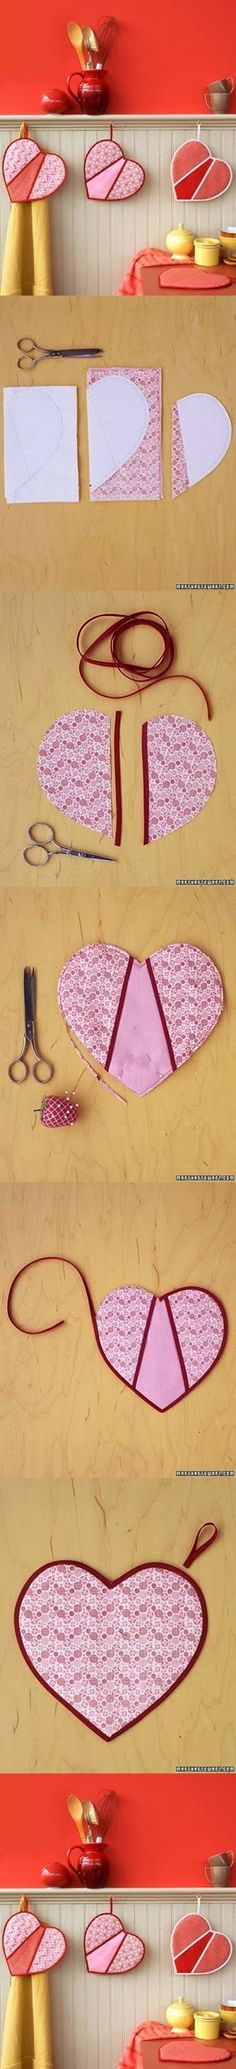 DIY : Heart Shaped Pot Holders | DIY & Crafts Tutorials